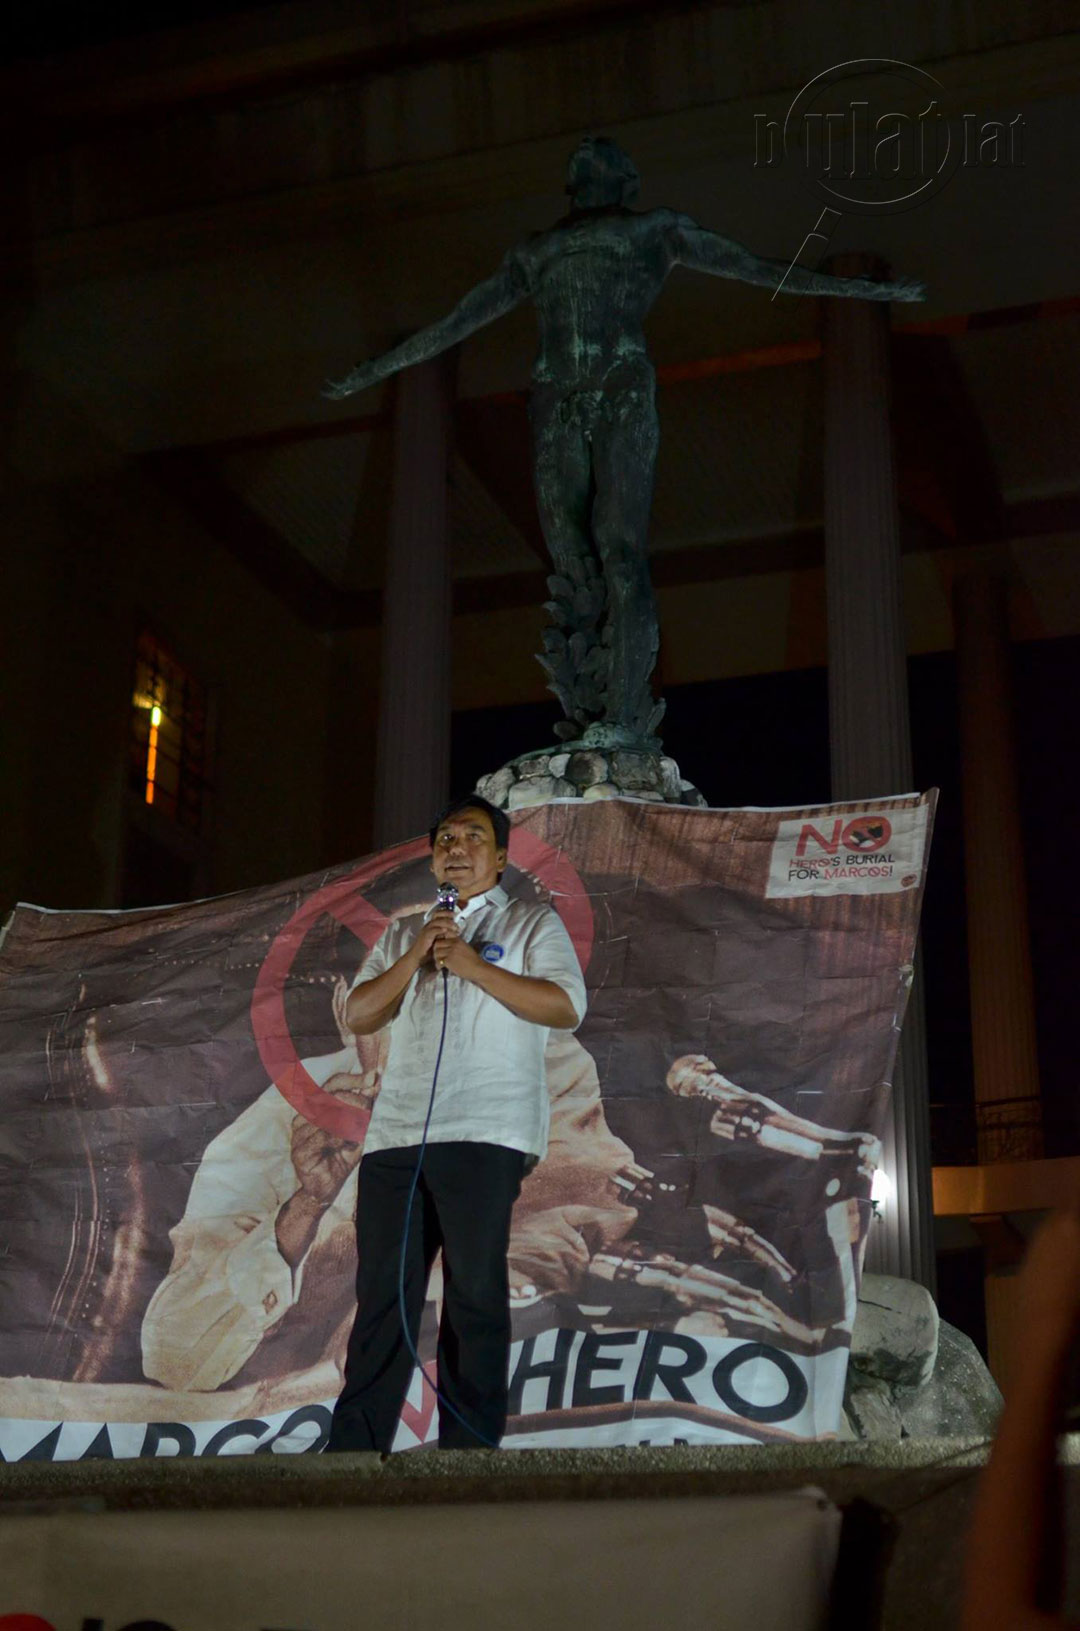 Ephraim Cortez, secretary general of the National Union of Peoples' Lawyers (NUPL) insists various jurisprudences declare Ferdinand Marcos a dictator and plunderer. (Photo by Loi Manalansan / Bulatlat)